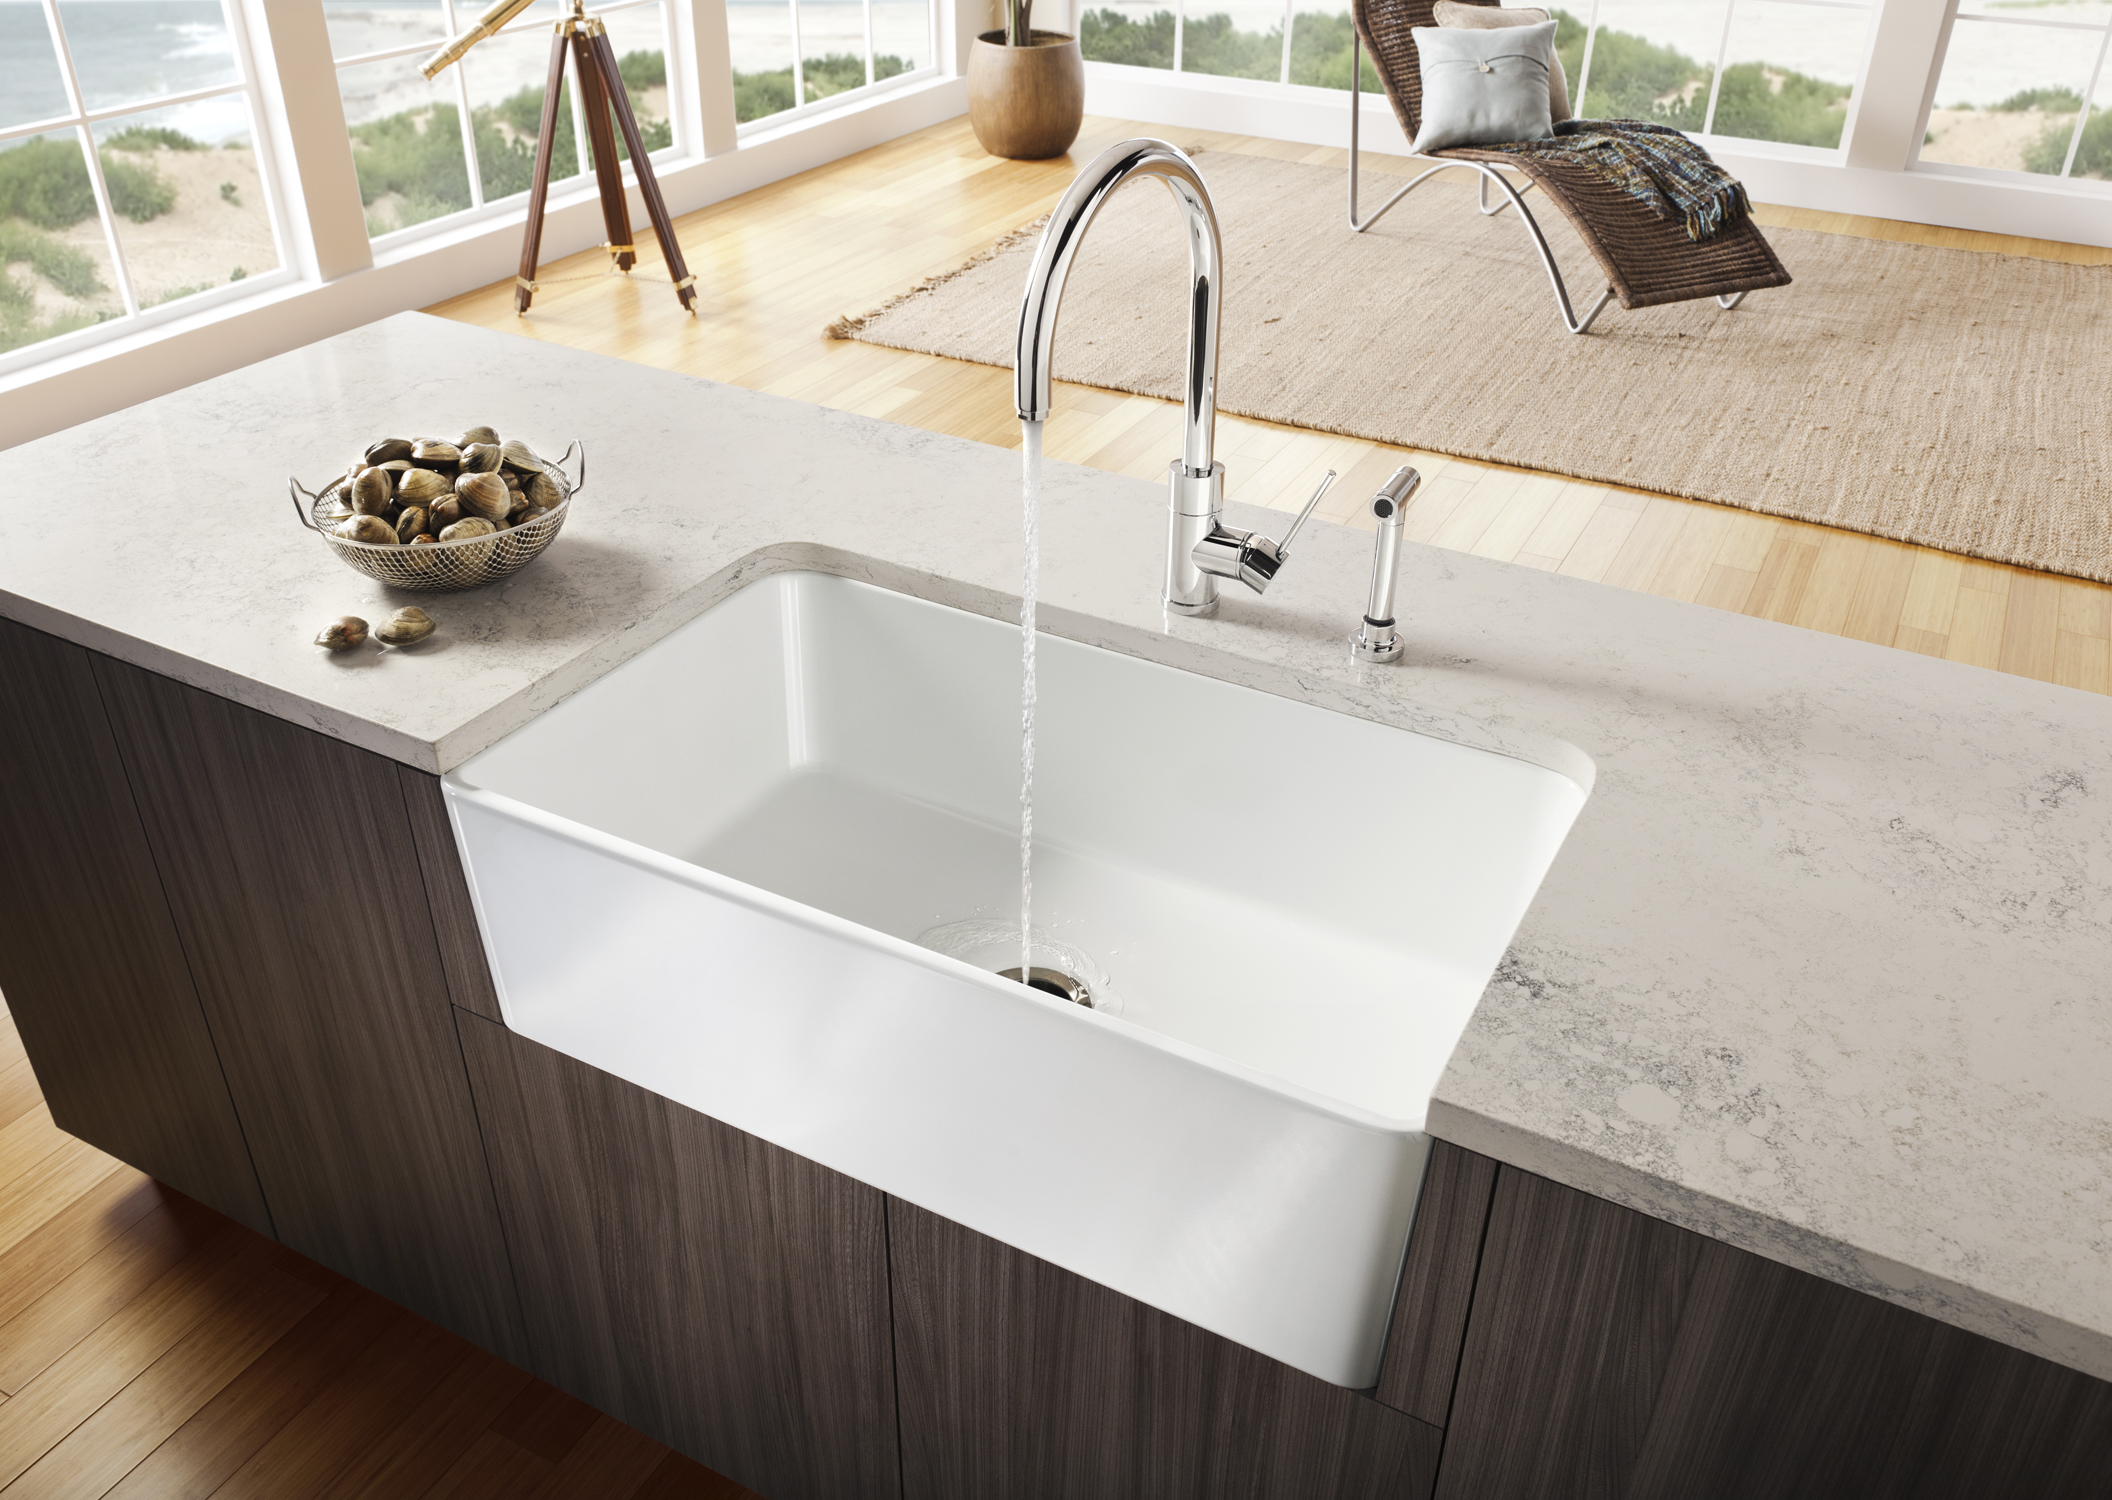 Network Küchen Blanco Introduces The Cerana™ Apron Front Kitchen Sink